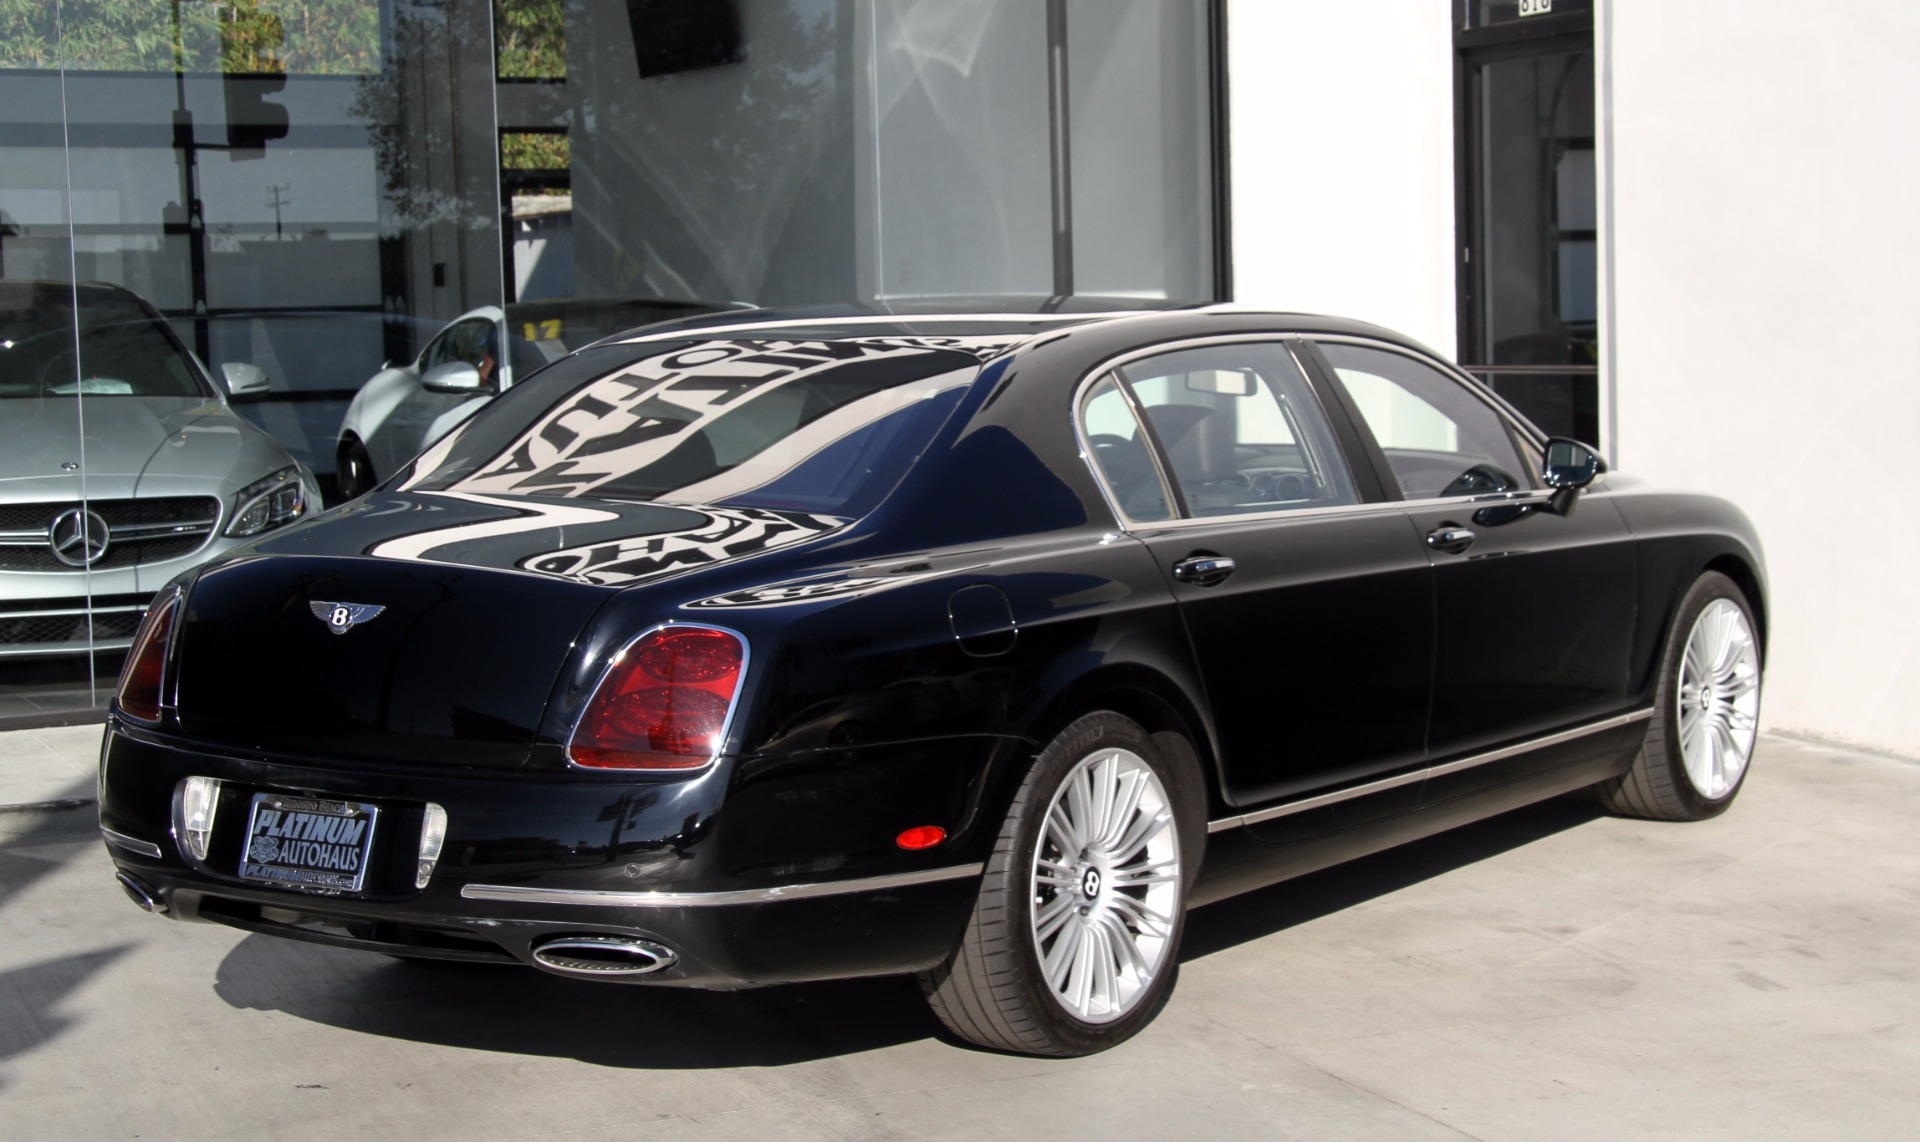 2009 bentley continental flying spur speed stock 6025 for sale near redondo beach ca ca. Black Bedroom Furniture Sets. Home Design Ideas